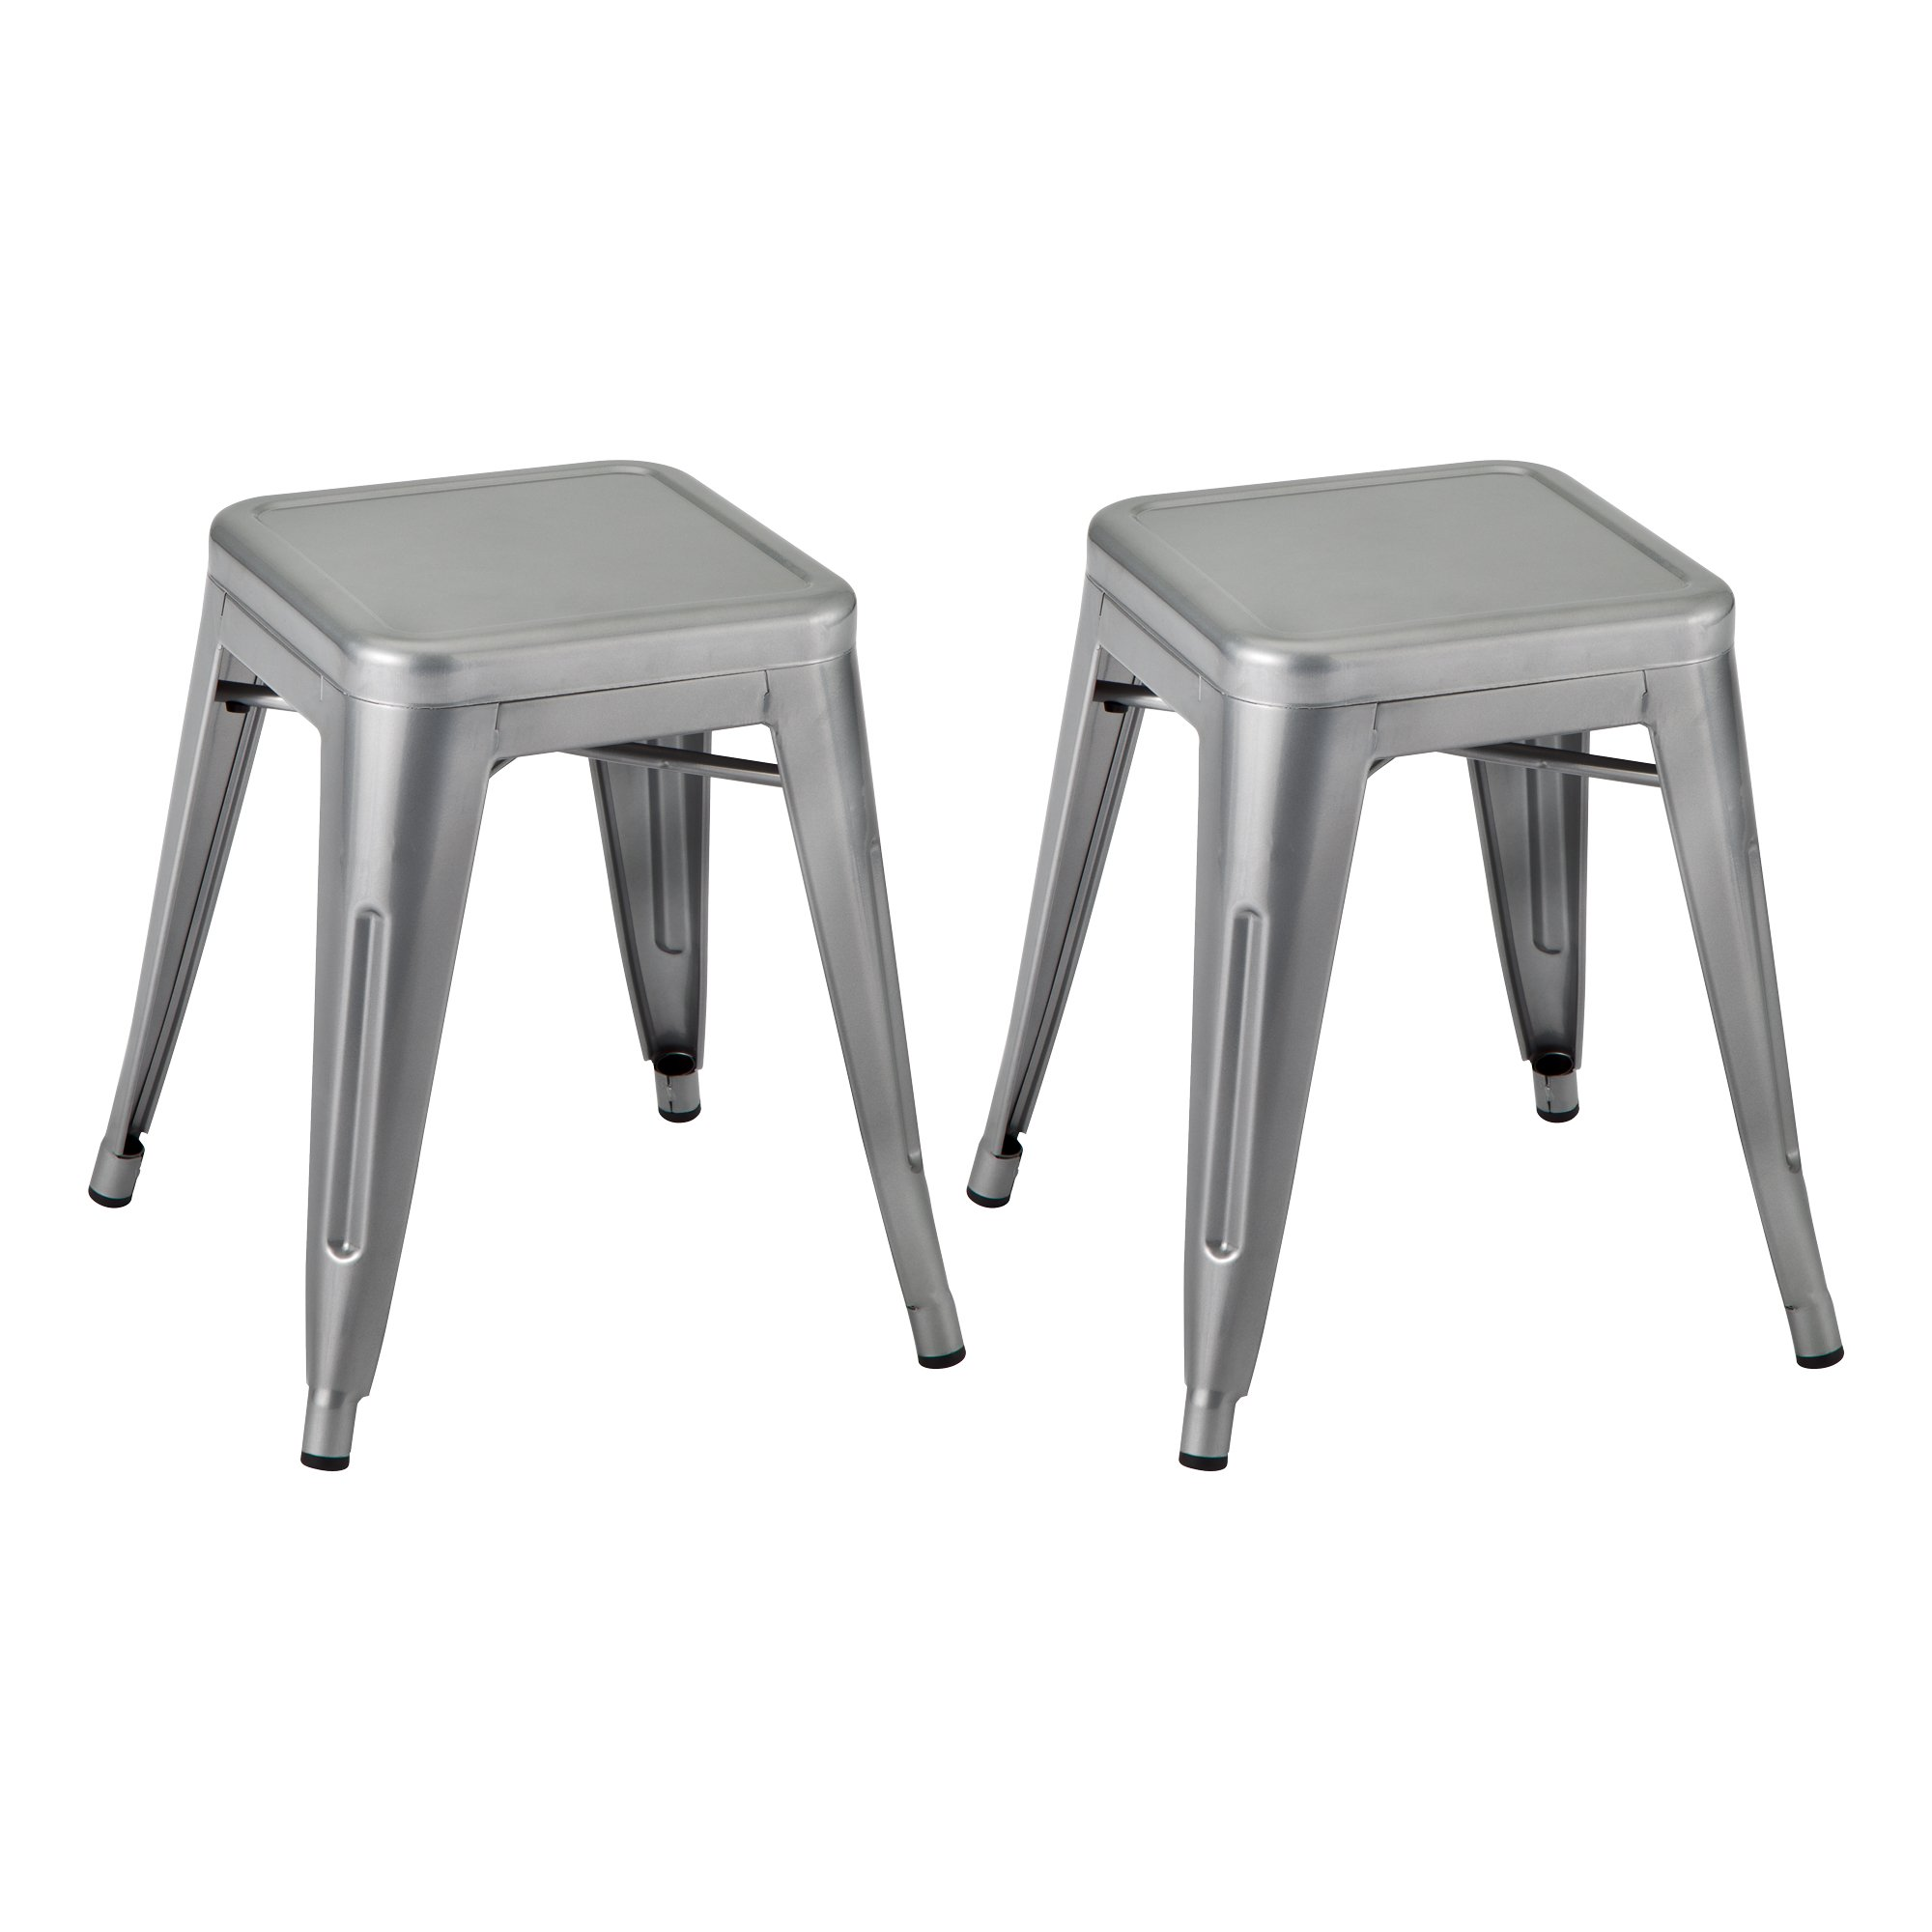 Pleasing Cheap Industrial Tolix Stool Find Industrial Tolix Stool Onthecornerstone Fun Painted Chair Ideas Images Onthecornerstoneorg